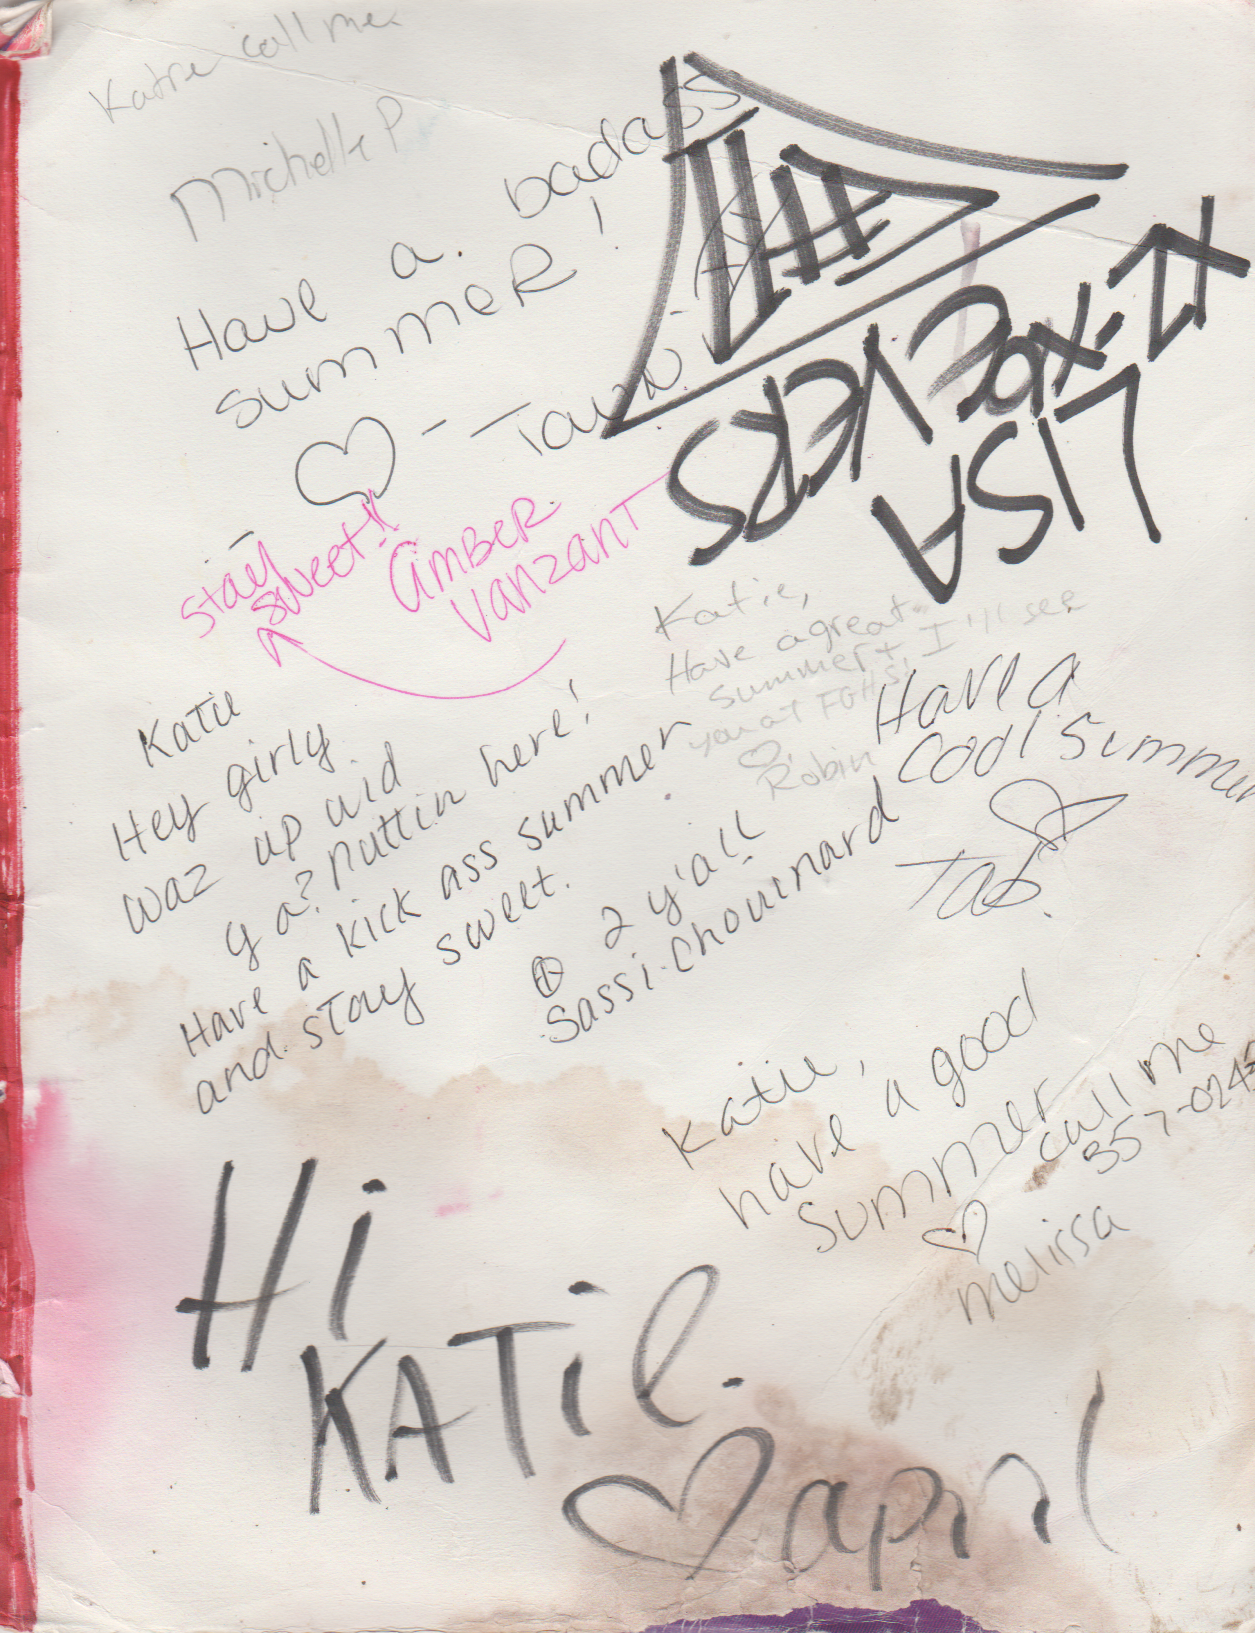 1994-06 - Katie Arnold, Neil Armstrong Memories Yearbook Cover, Signatures, Messages From Classmates-3.png